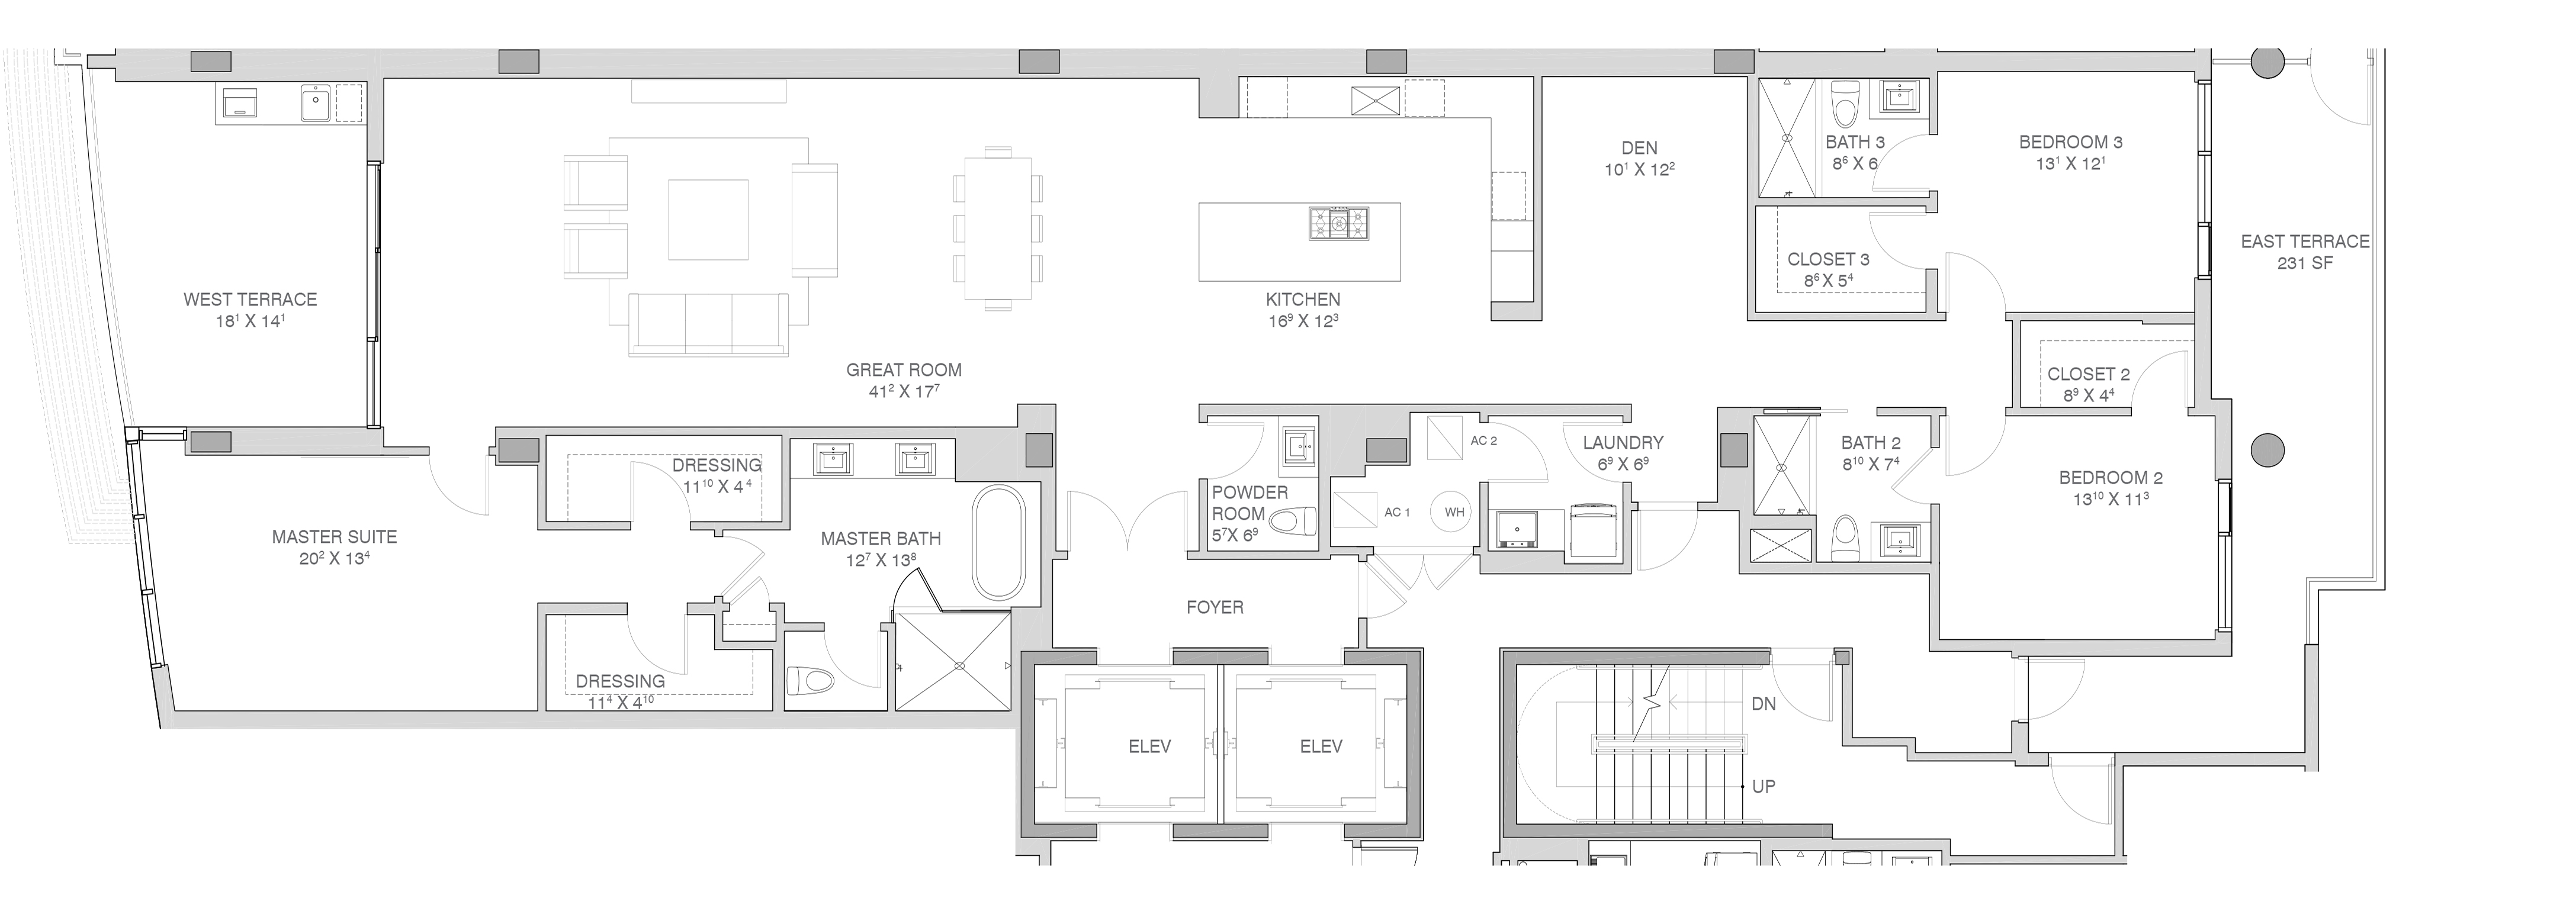 Adagio Fort Lauderdale Beach - Floorplan 2